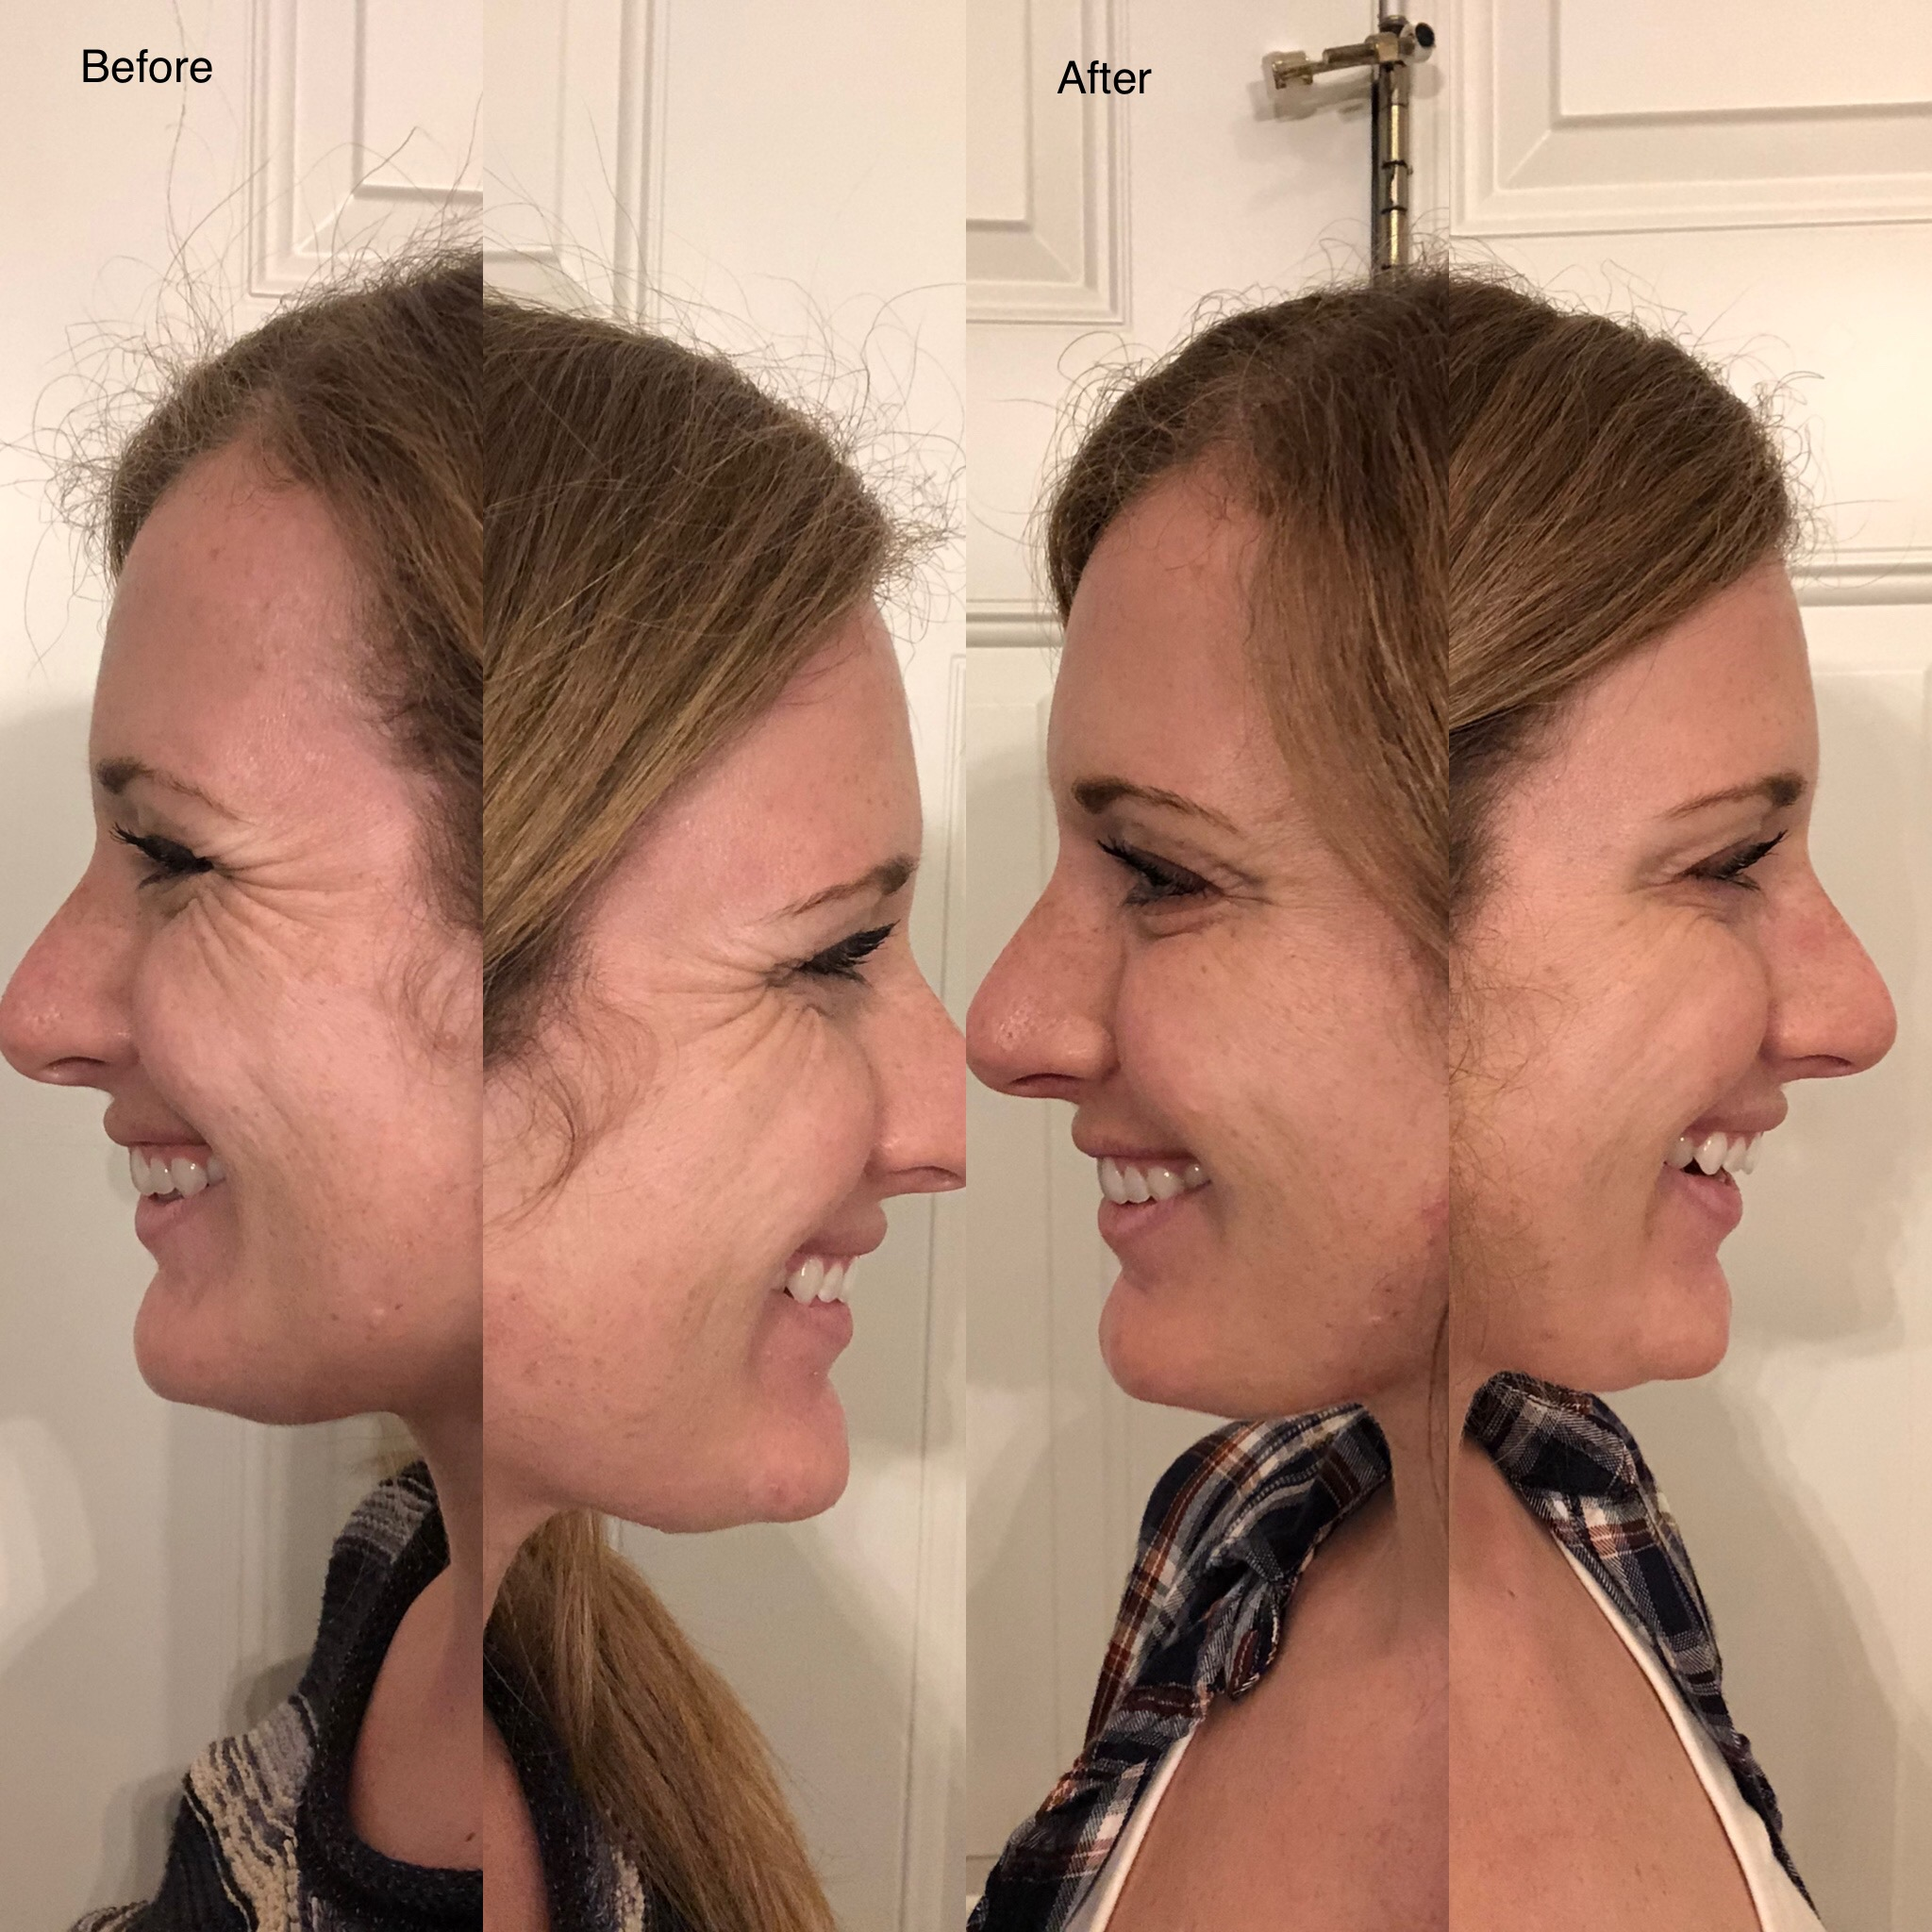 One of the target areas for botox is smile lines